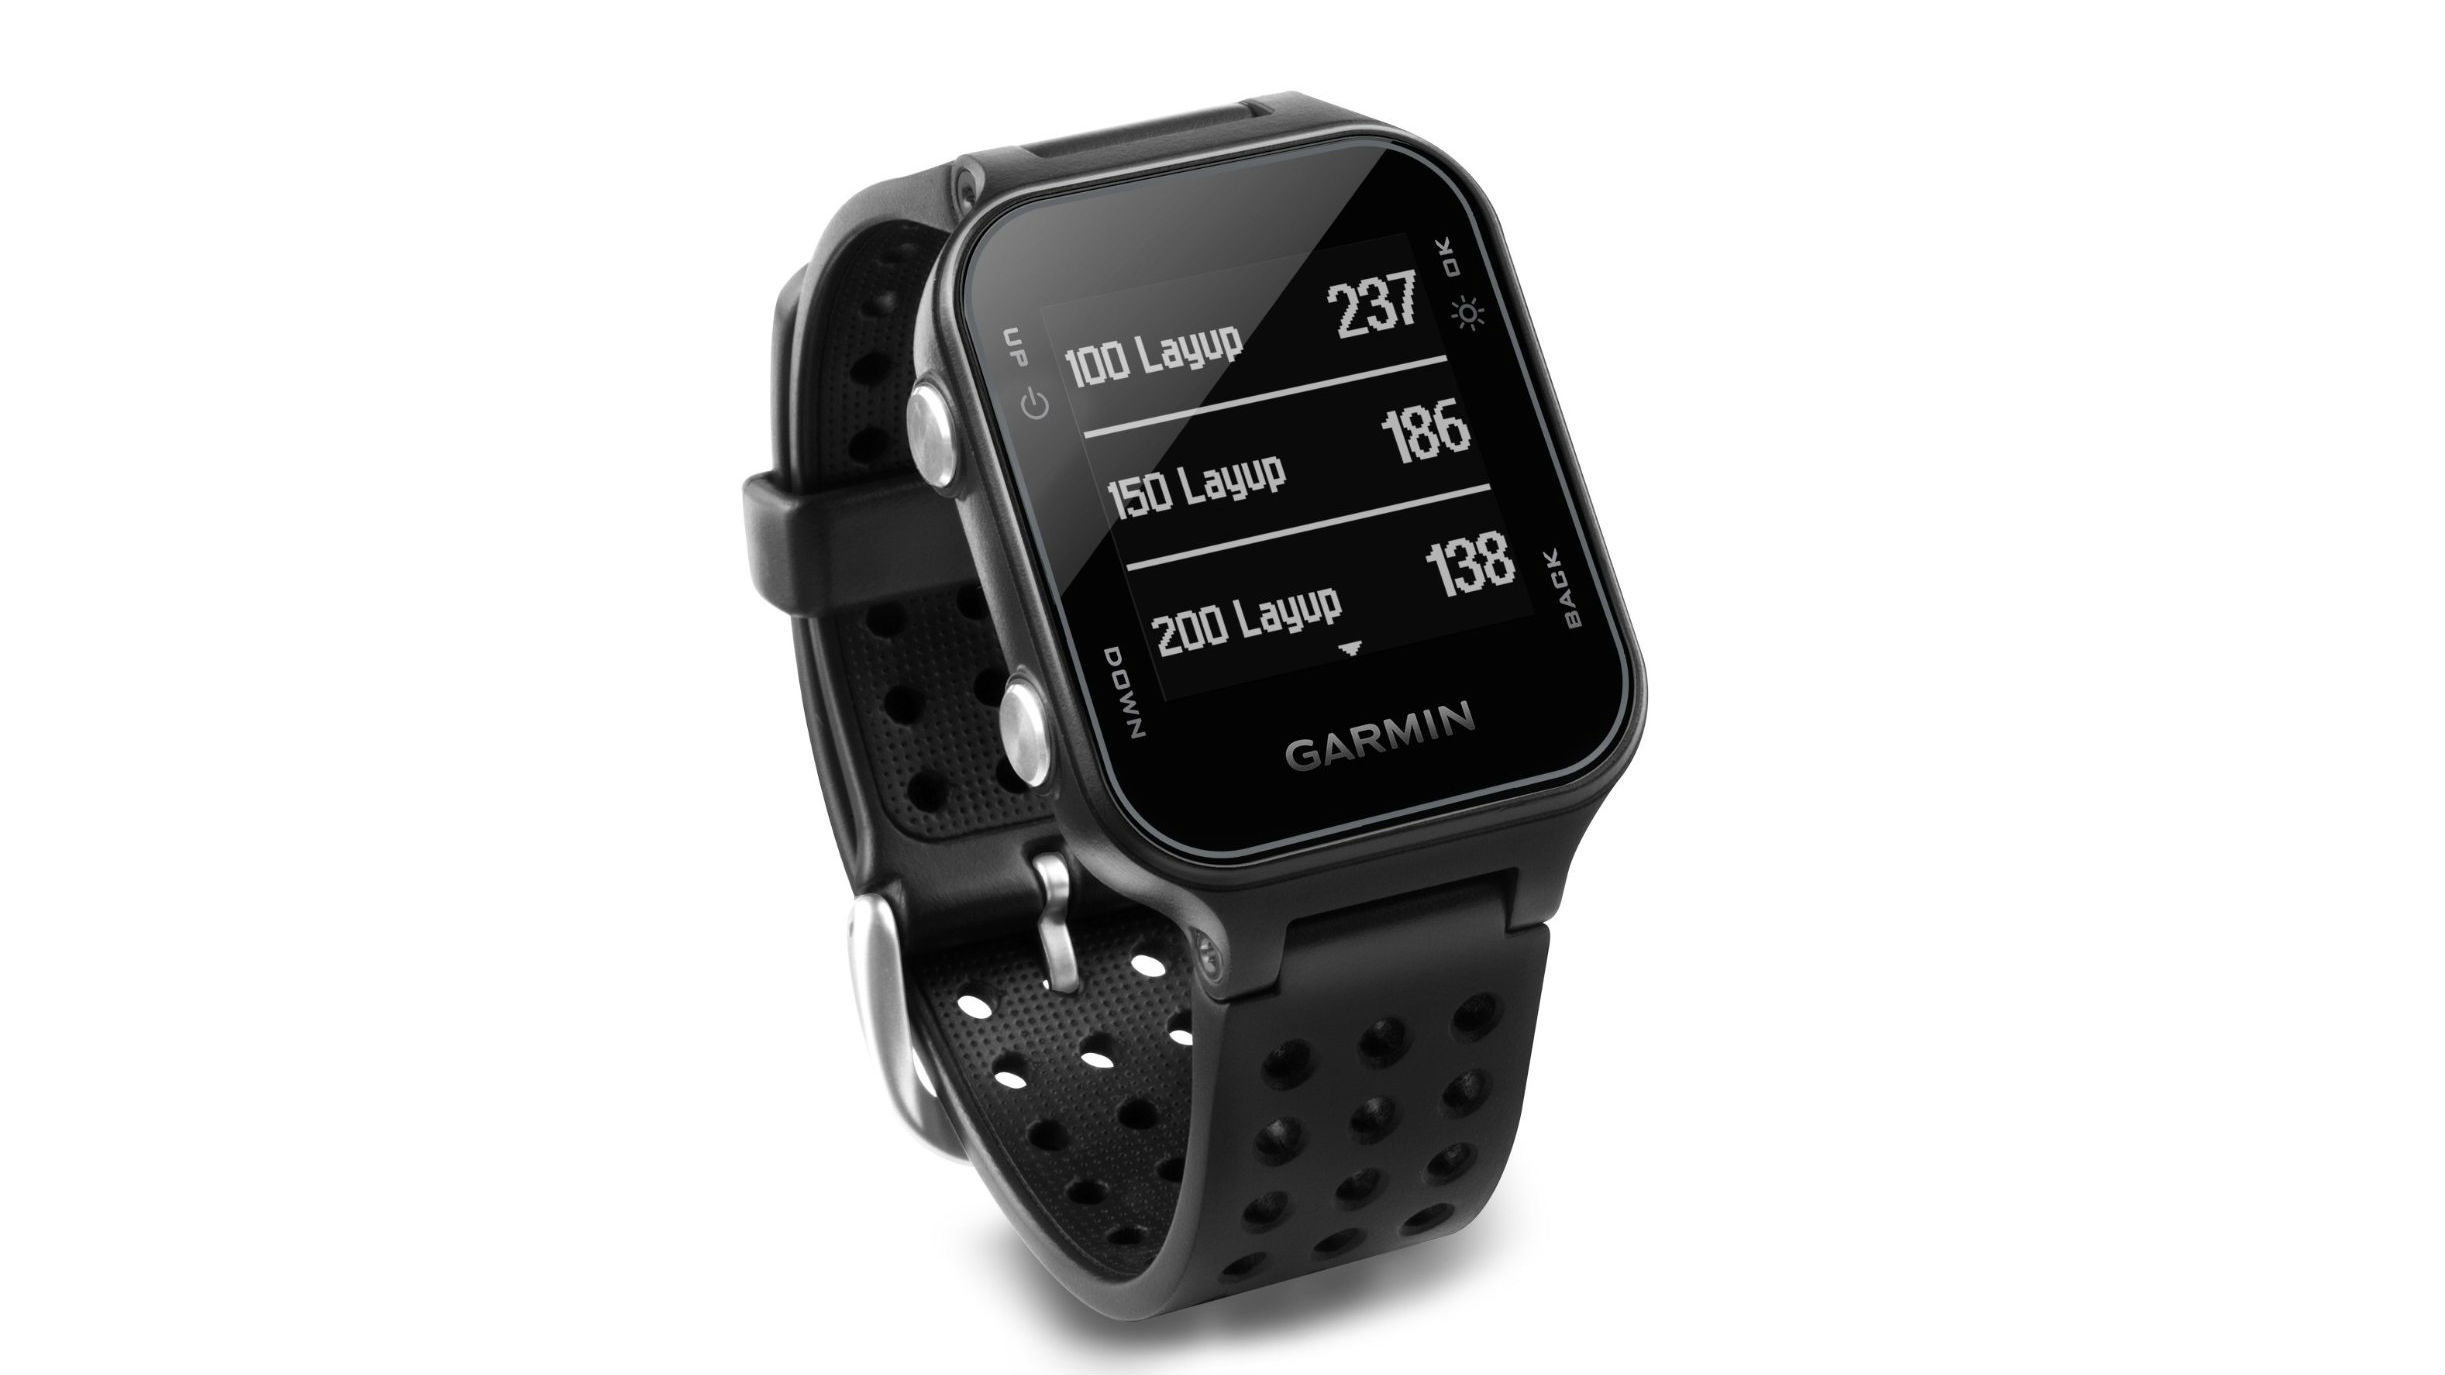 Garmin Know What Theyre Doing When It Comes To Golf Gps Watches And The S Approach Is The Latest In A Long Line Of Great Models This Is Their Best Yet